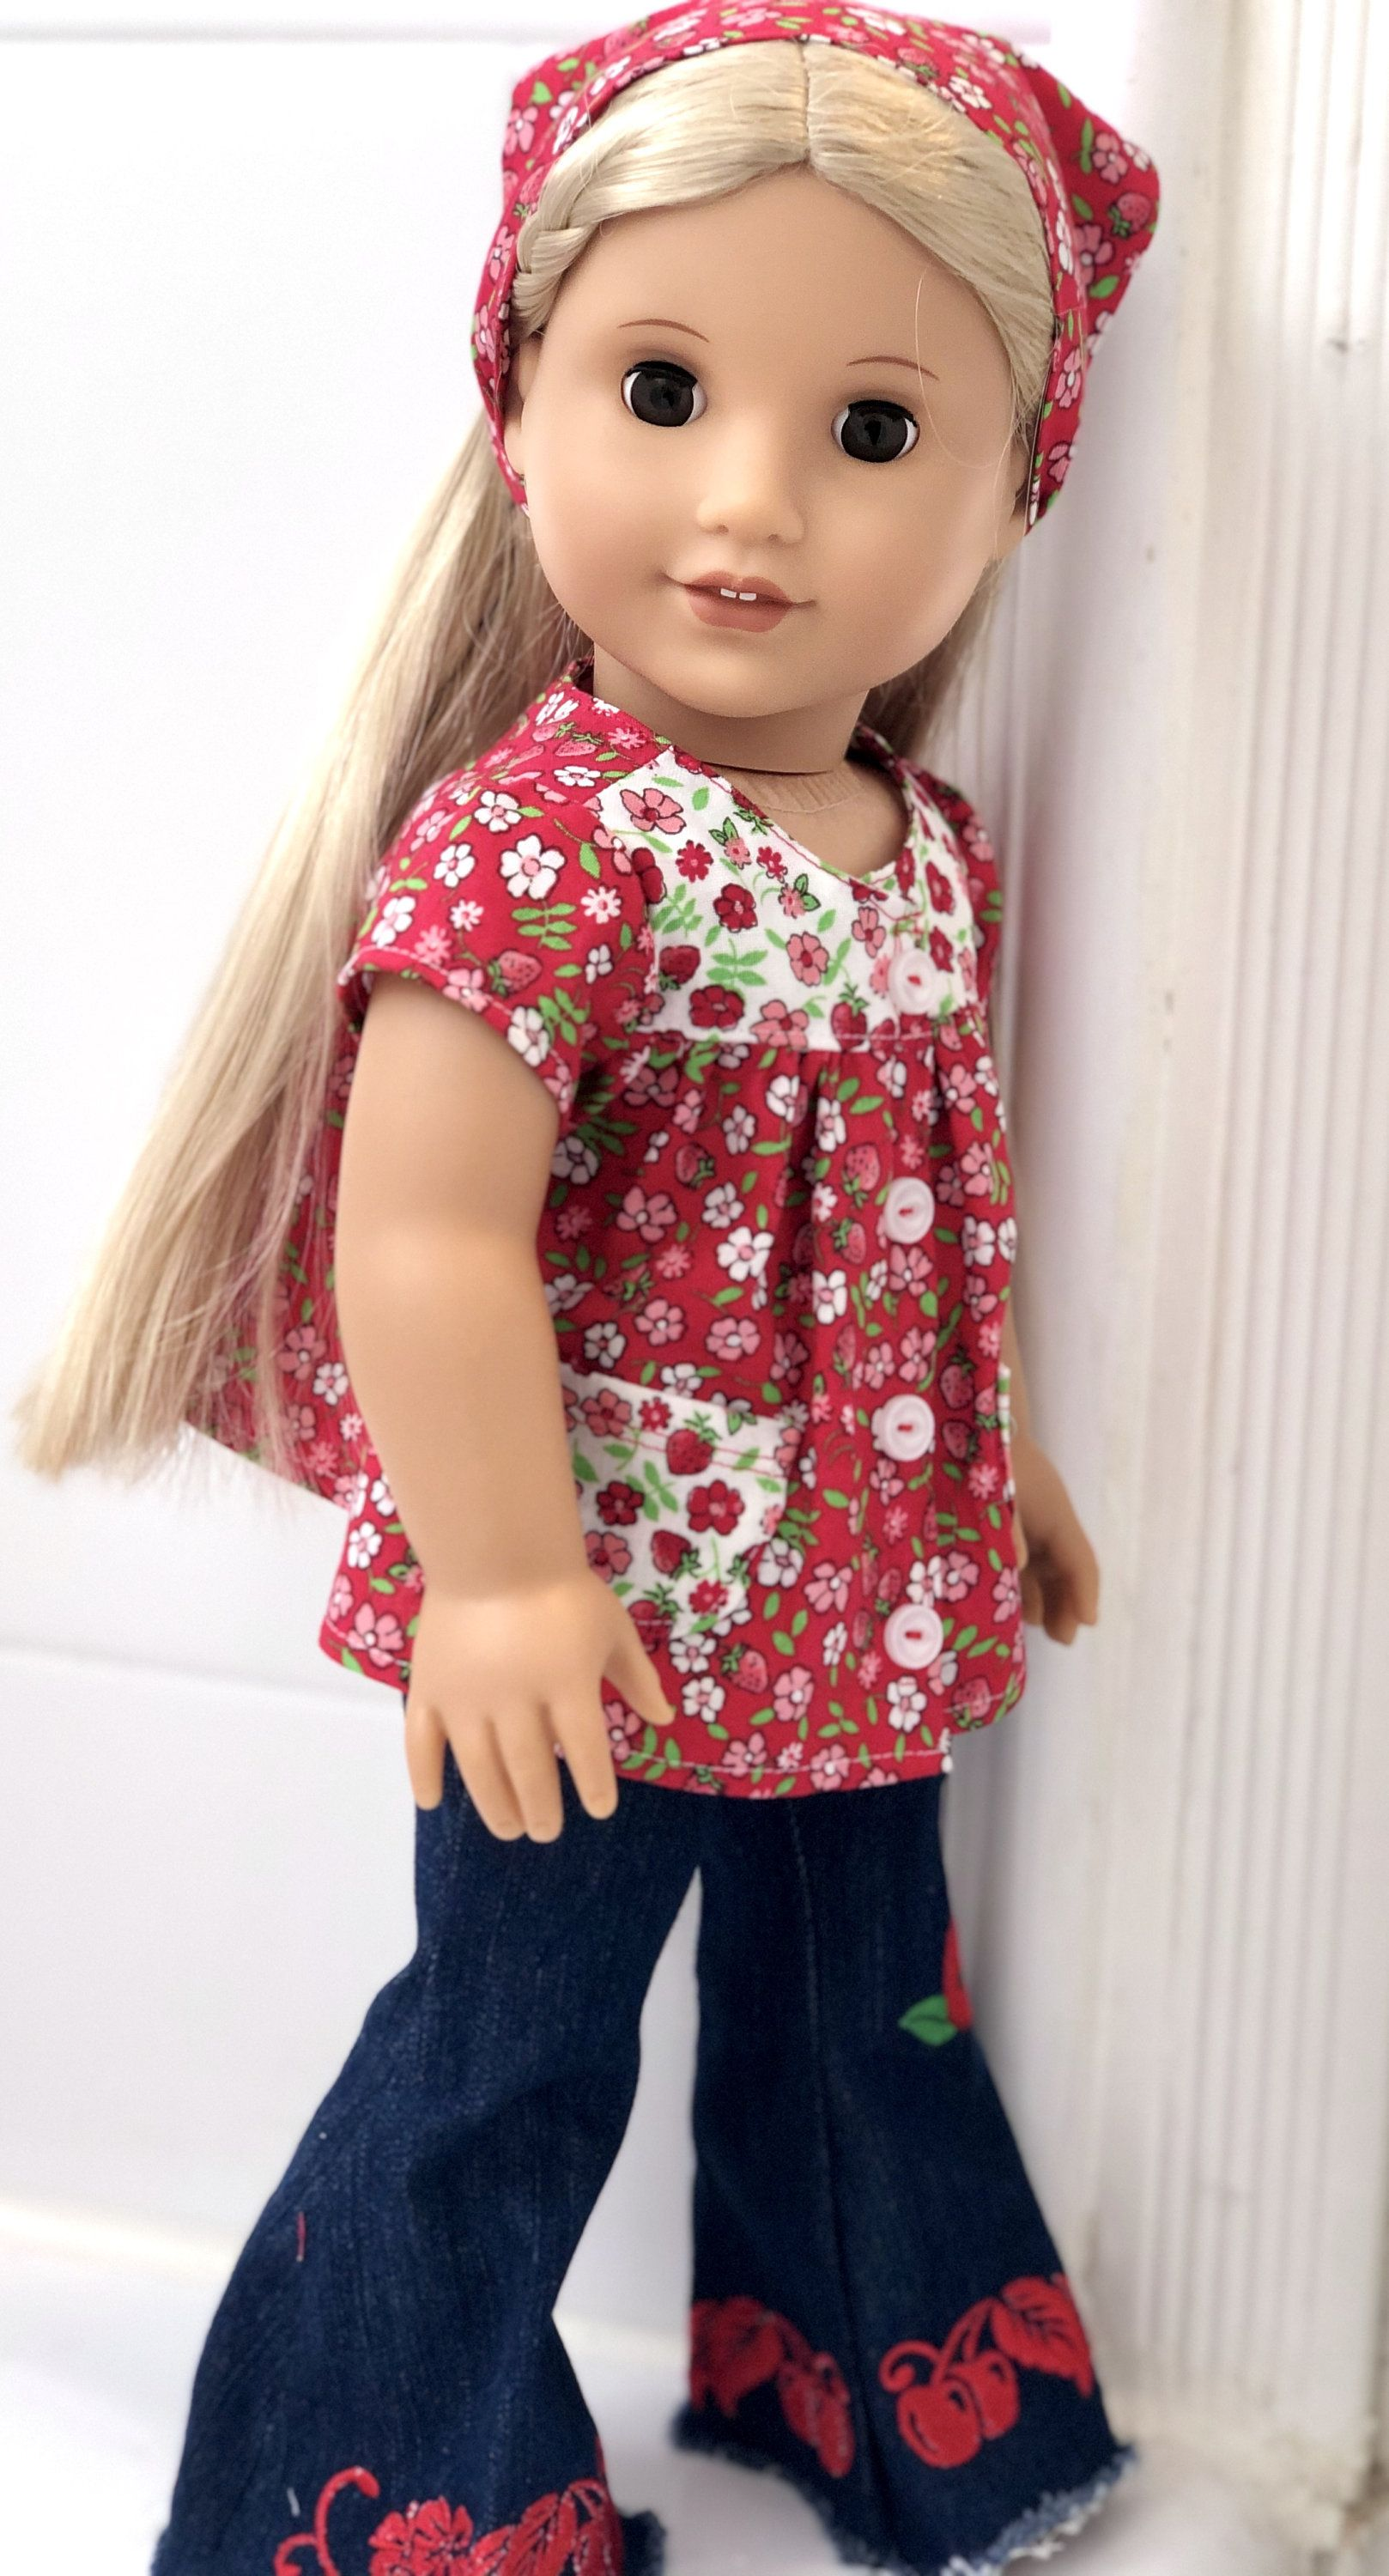 18 Inch Doll Clothes - Retro 1970s Style Smock Top, Scarf, and Embroidered Jeans -Made for 18 Inch Girl Dolls Such as THE Most Popular Doll!